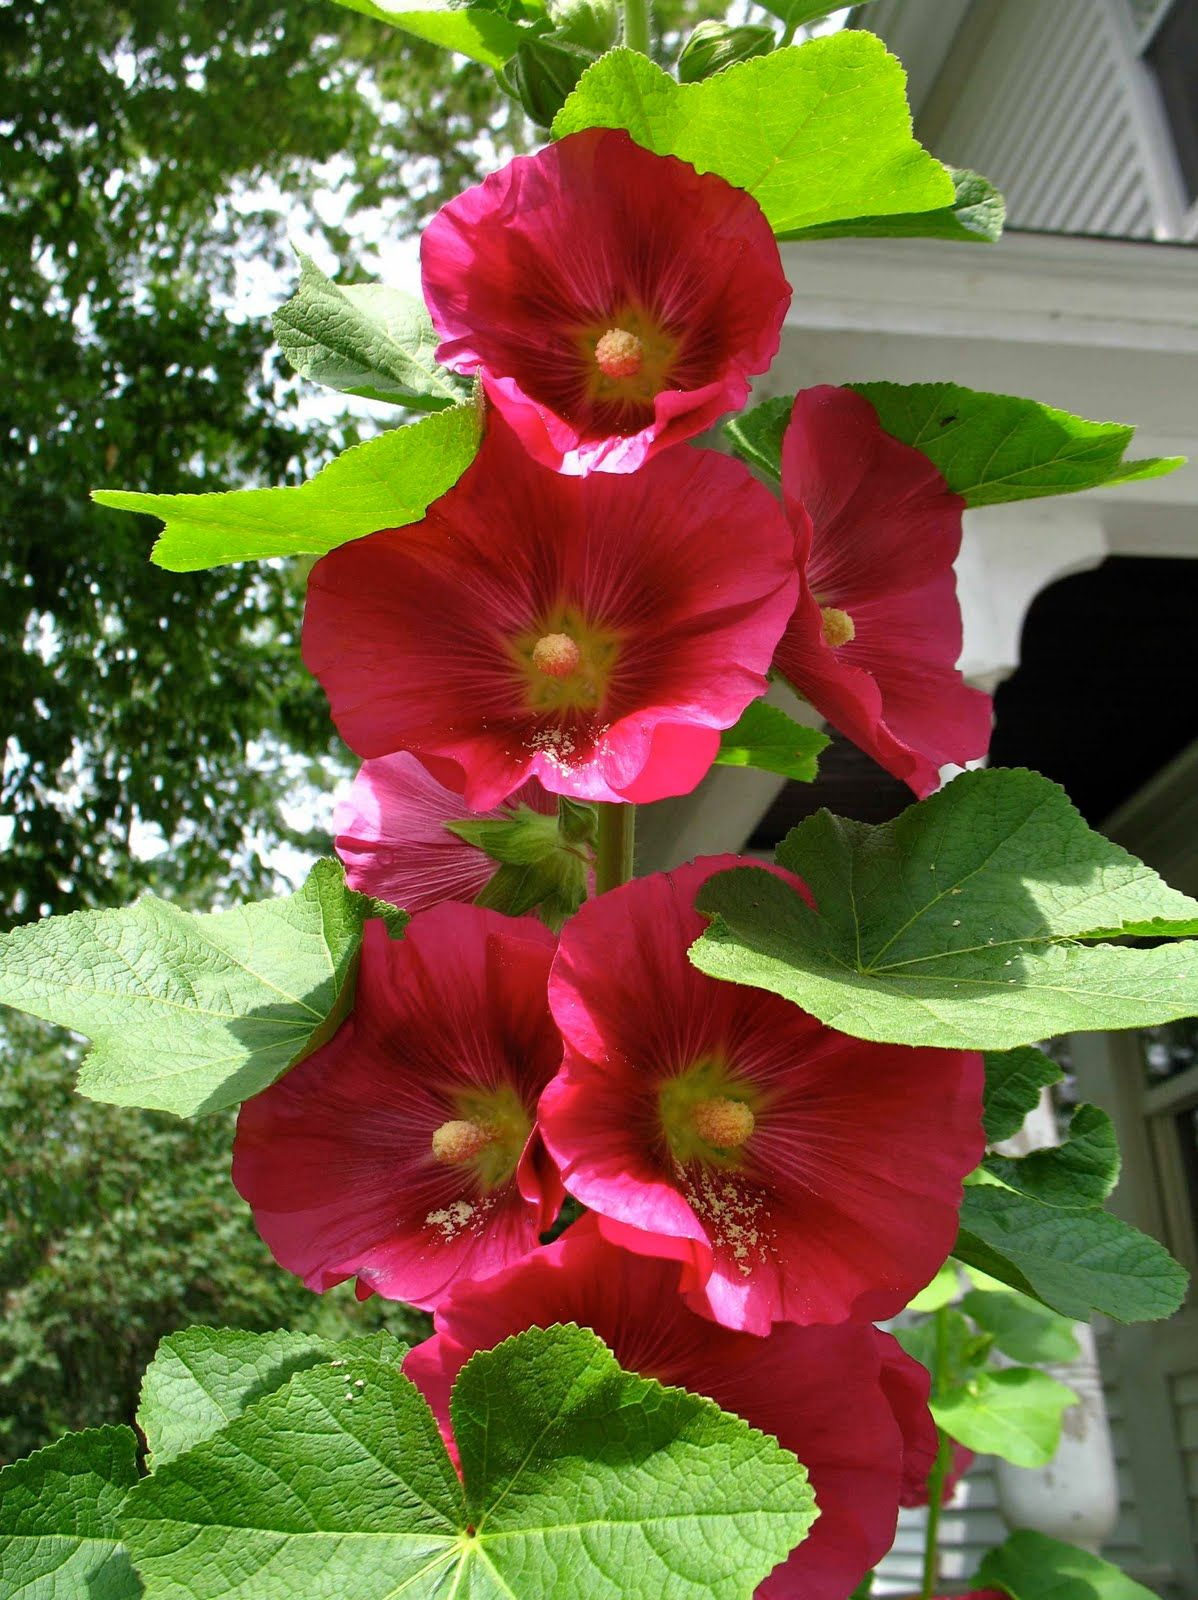 Hollyhock Fun And Bright Annual Flower Needs Sun And A Fence Or